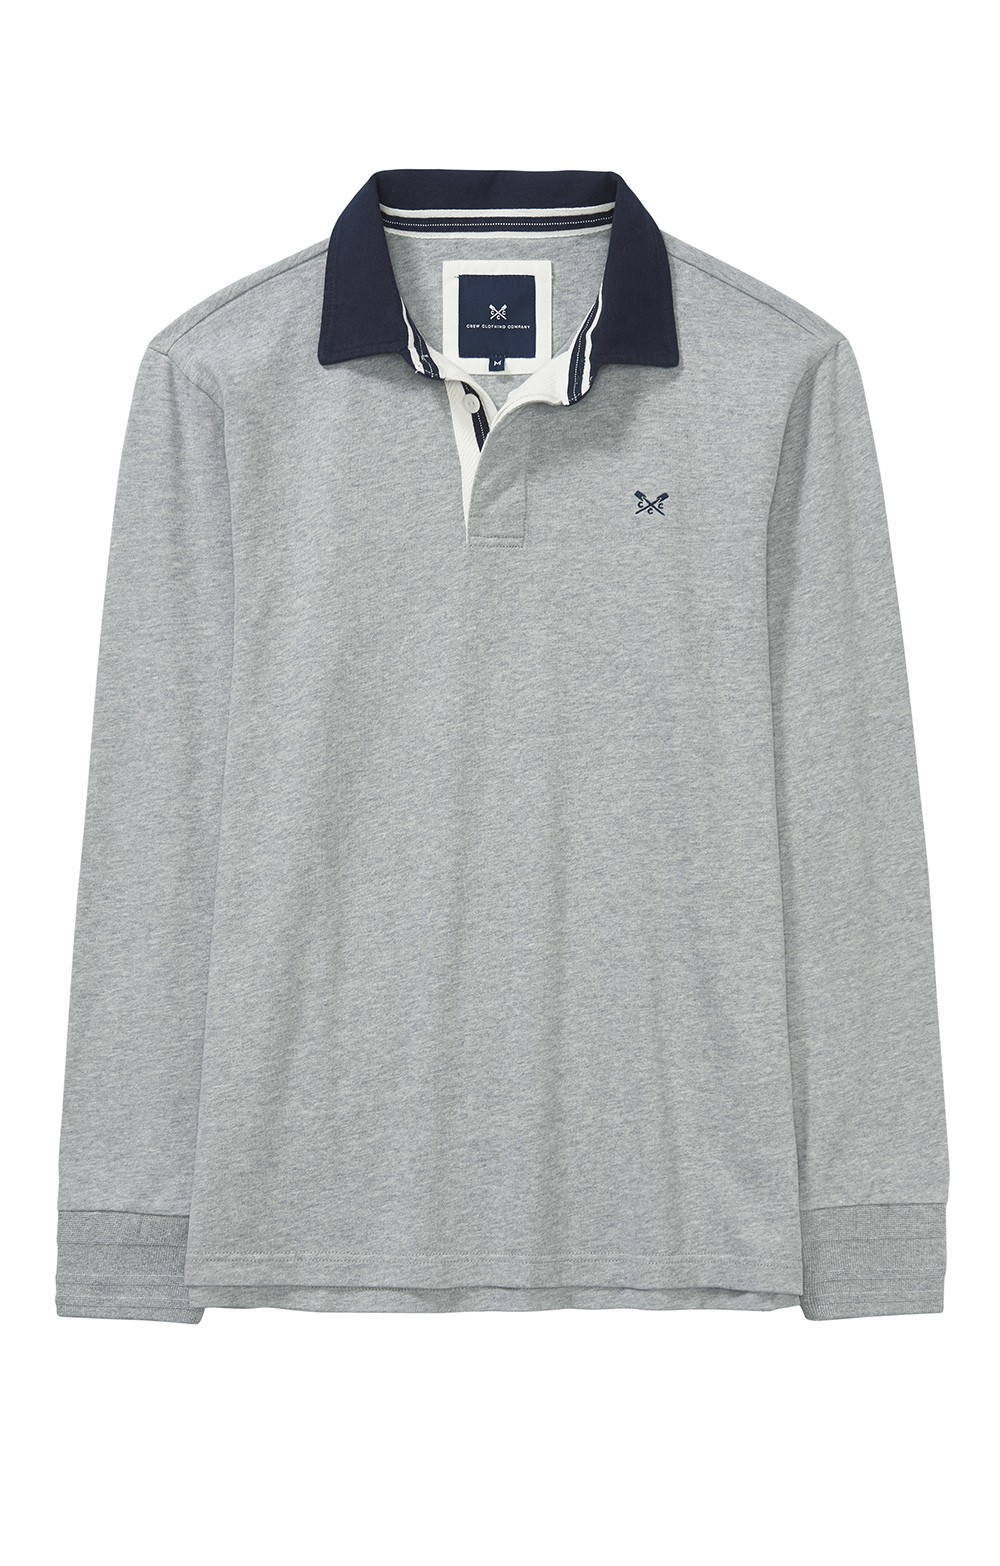 Mens Crew Clothing Classic Rugby Shirt House Of Bruar